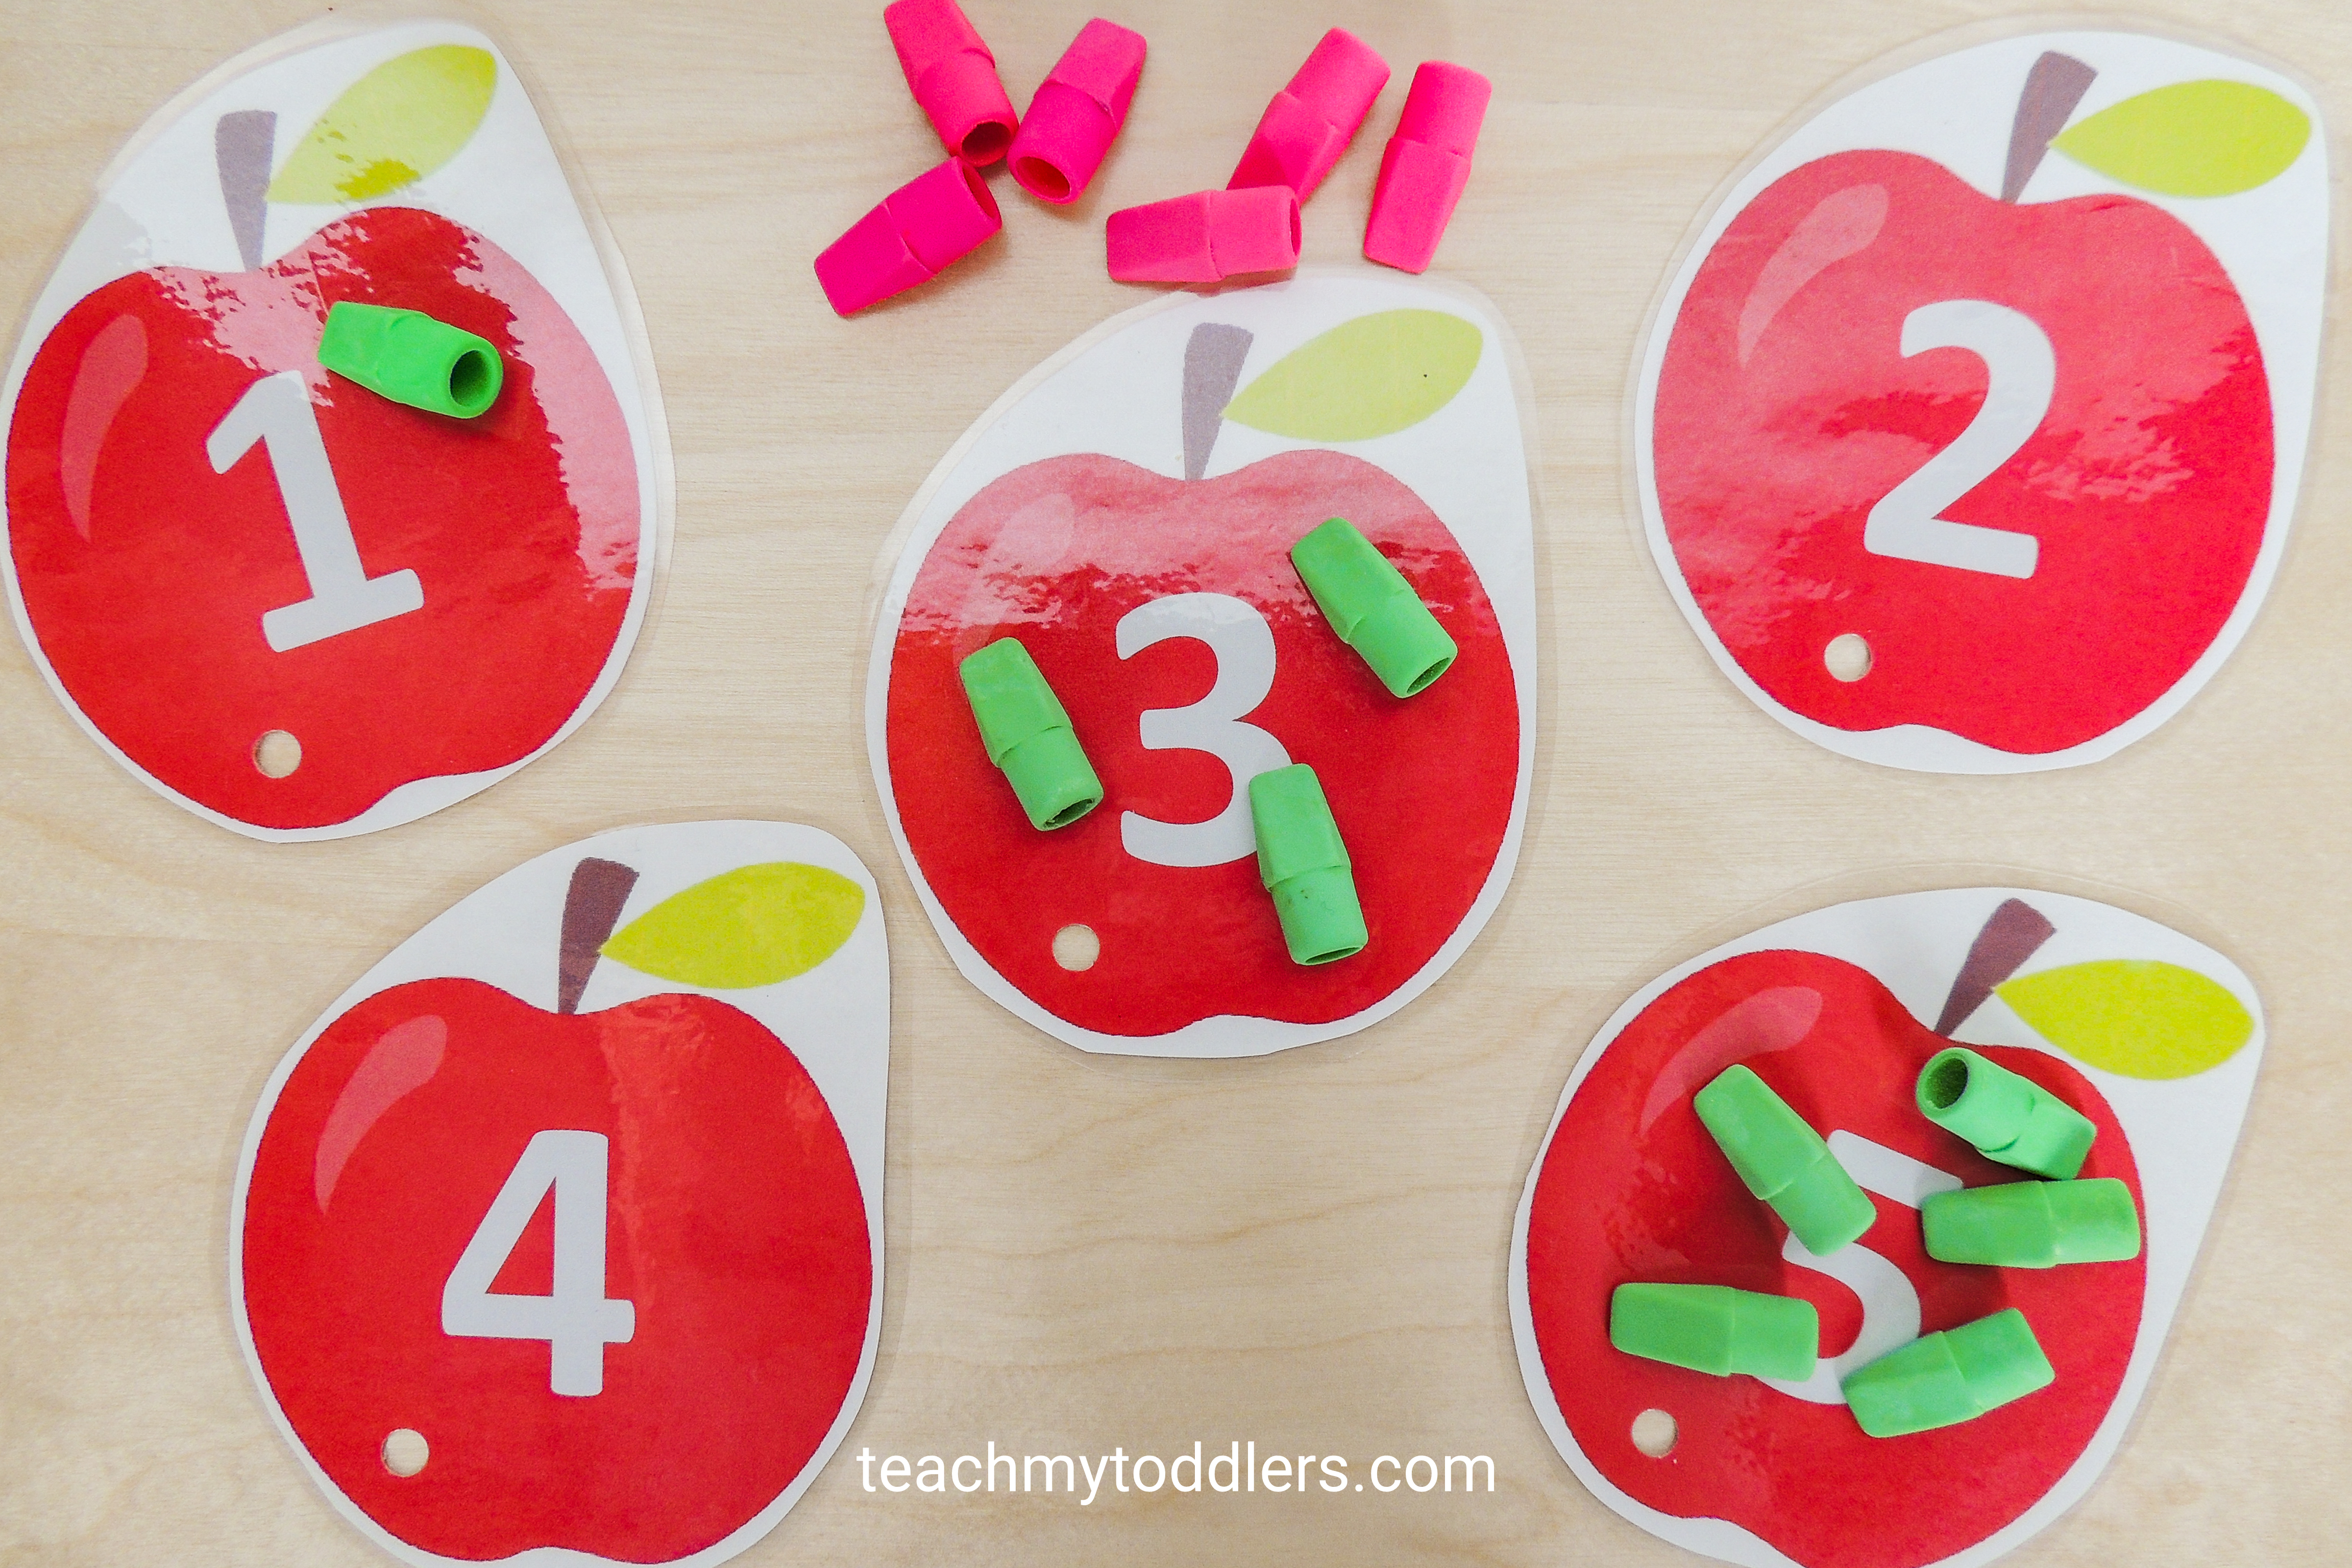 Find out how to use these clip cards to teach your toddlers numbers